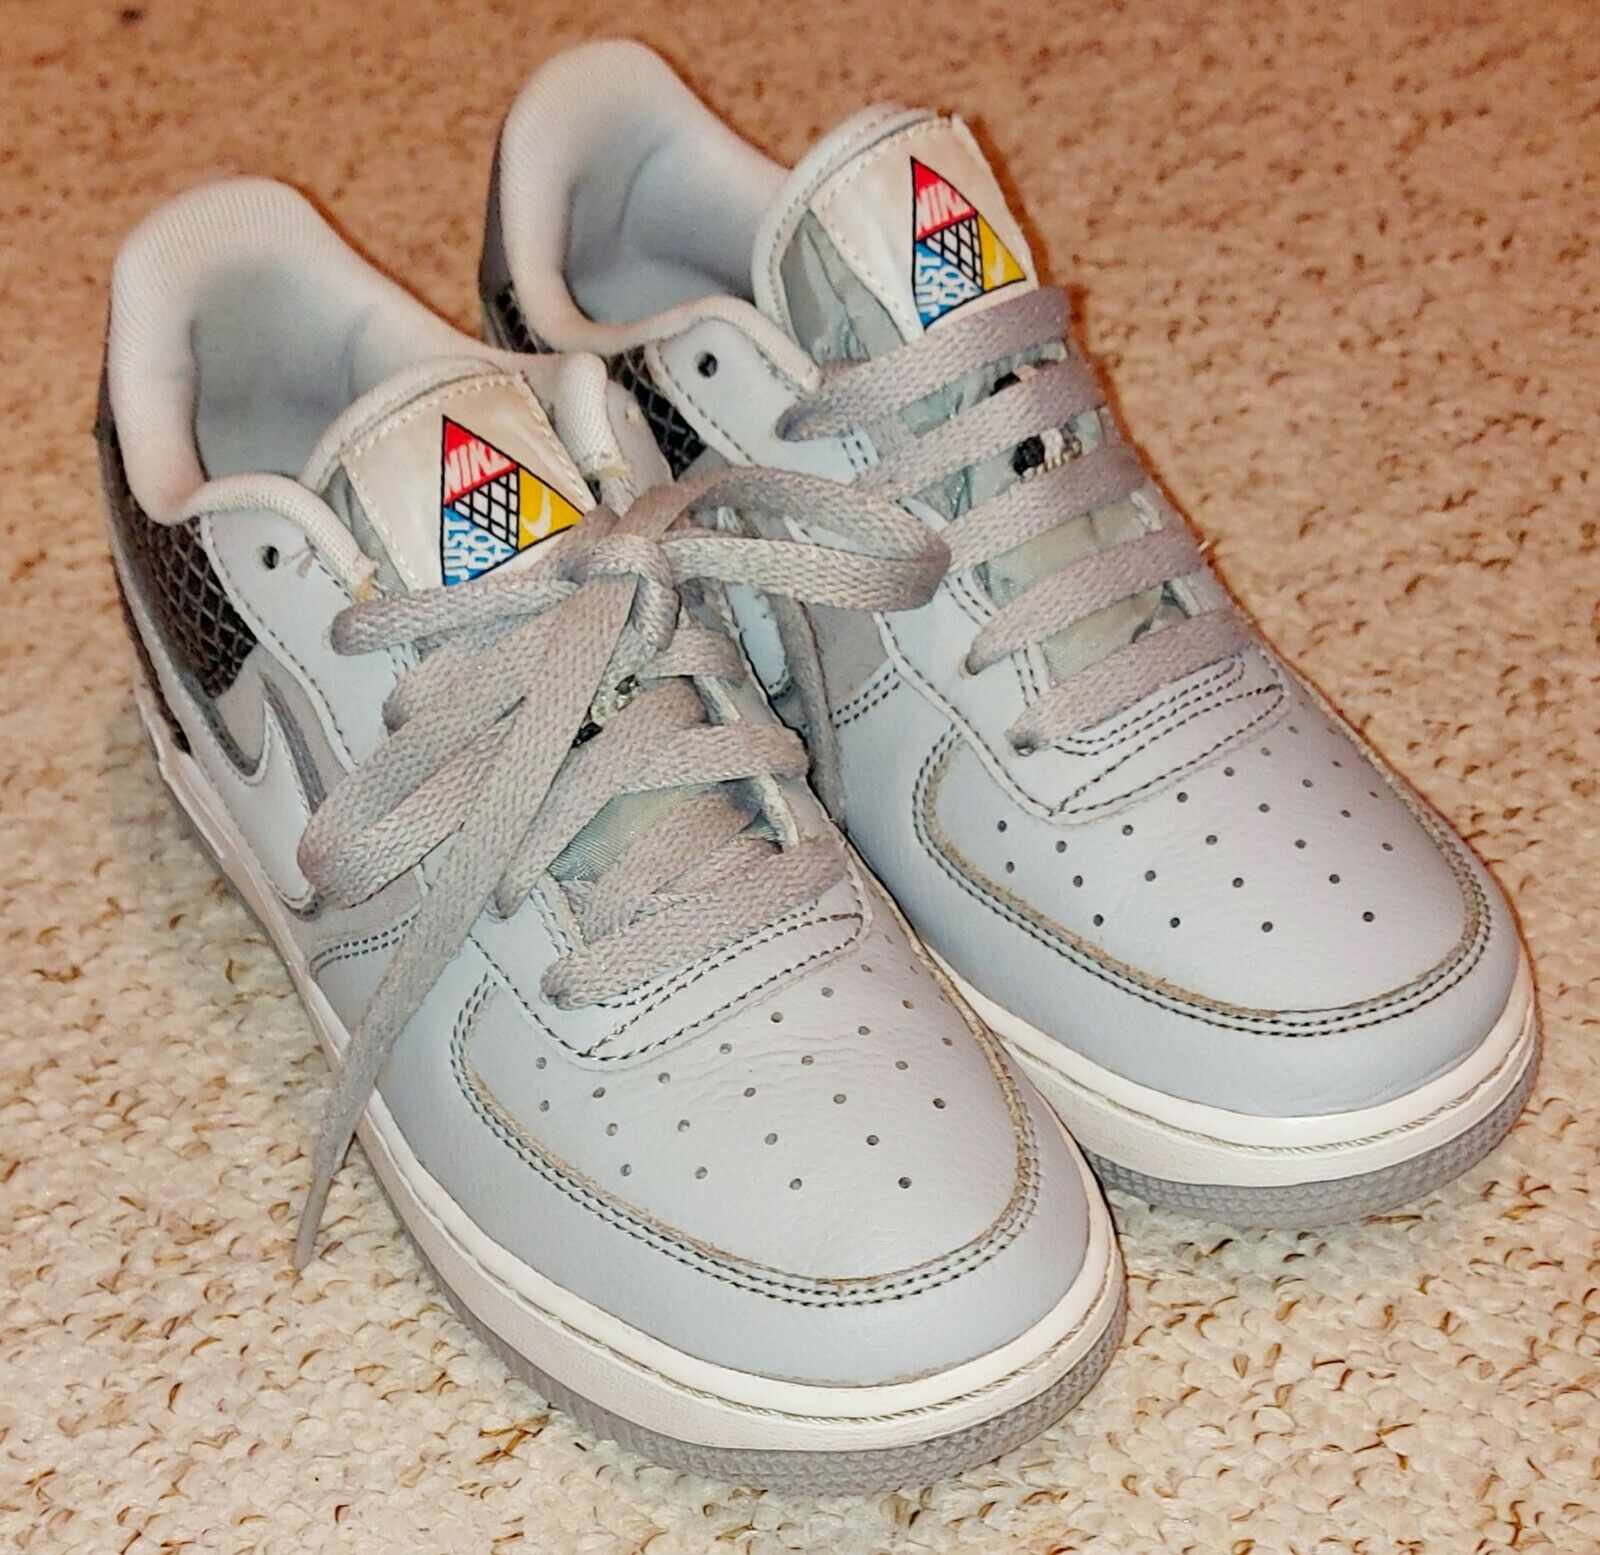 Nike Air Force 1 Now Af1 Wolf Grey Kid Boys Men's Shoes Av0748 001 Used Size 4.5